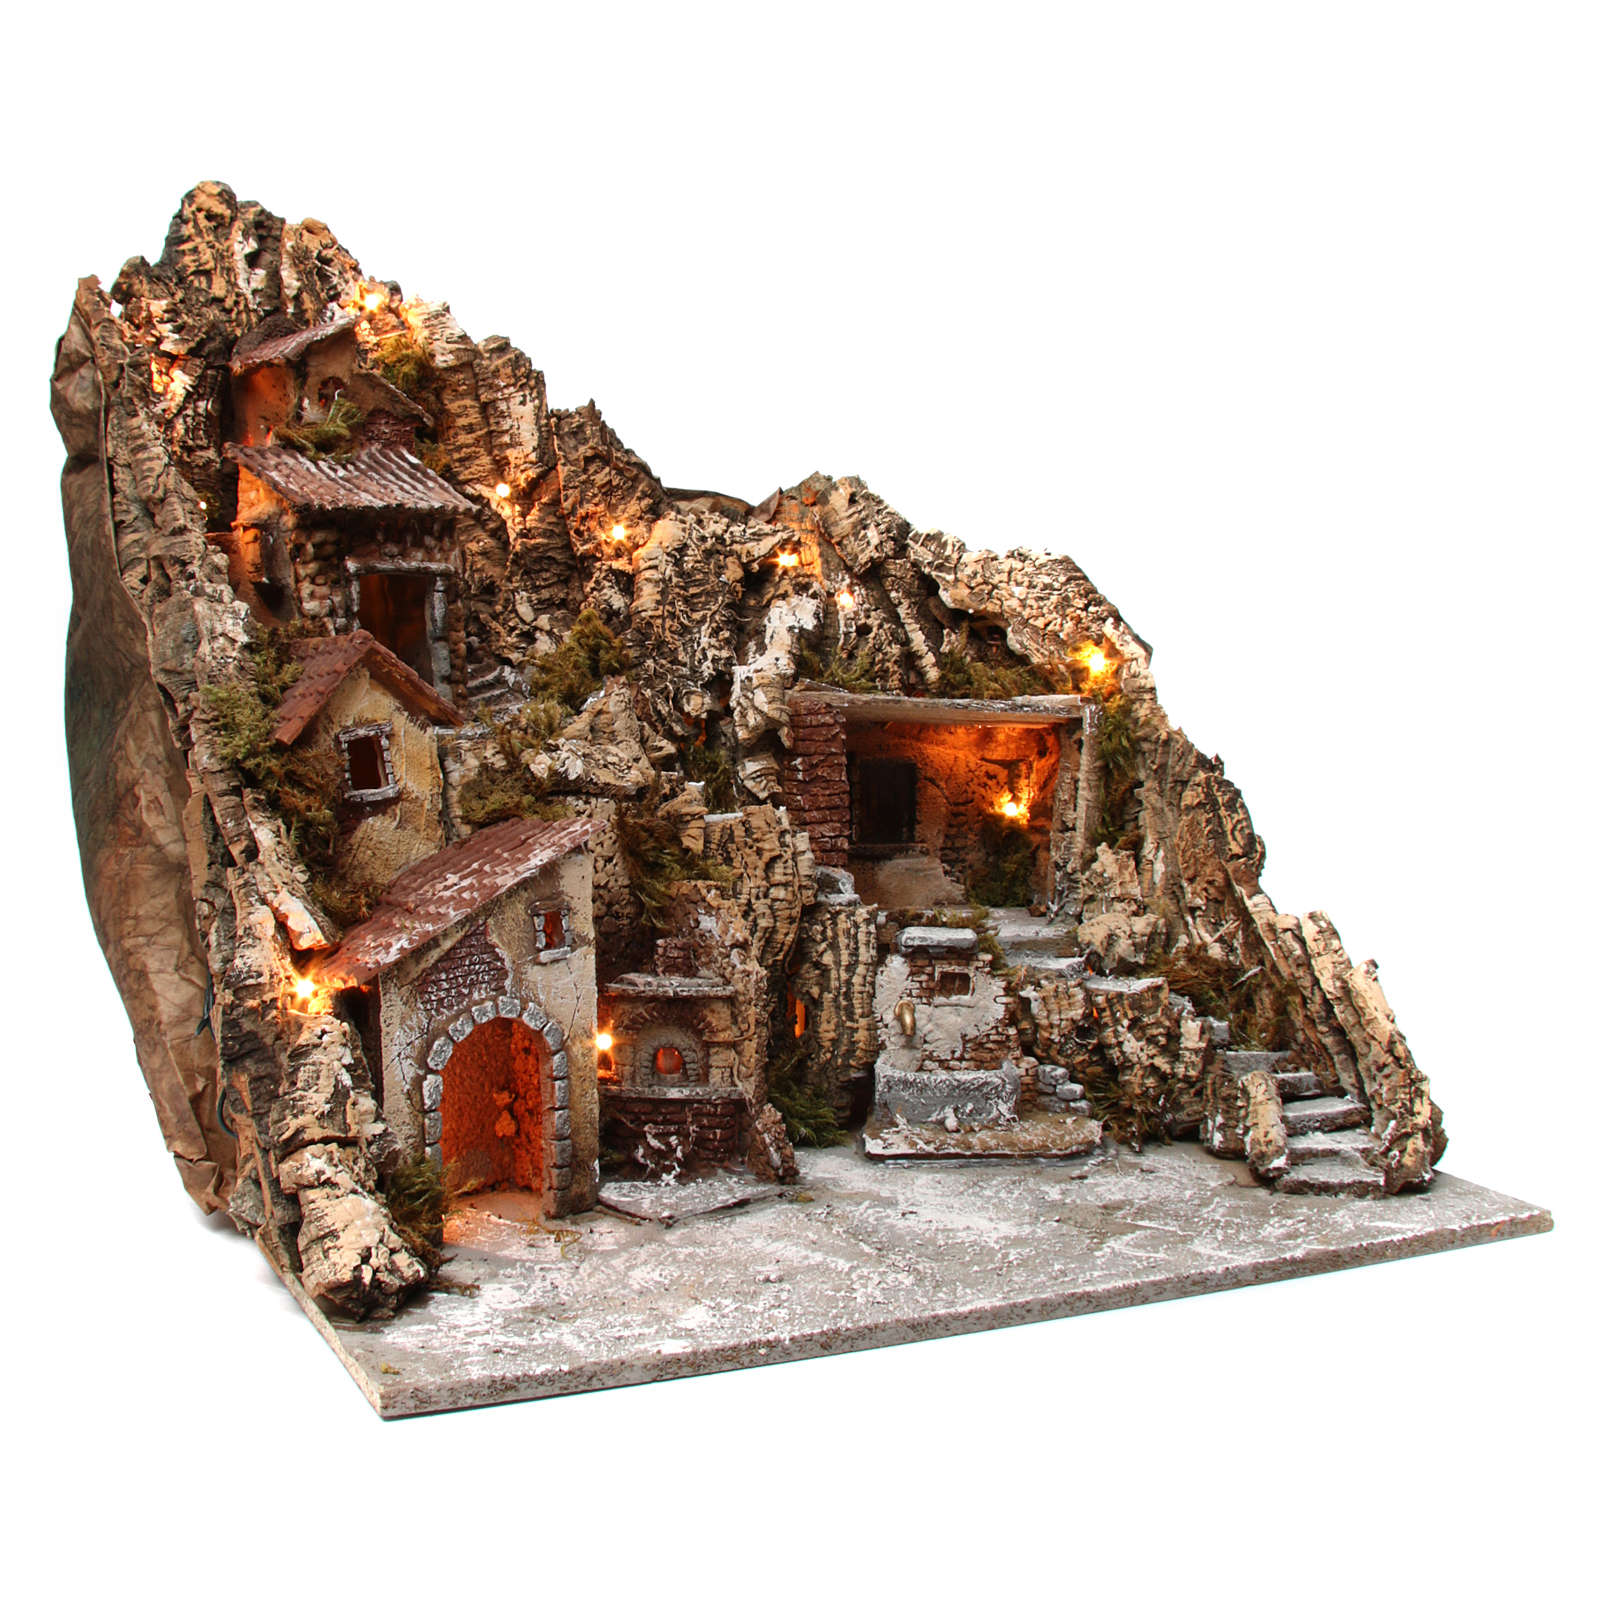 Lit Nativity with Moving Fountain Oven 55X60X60 cm Neapolitan nativity 4